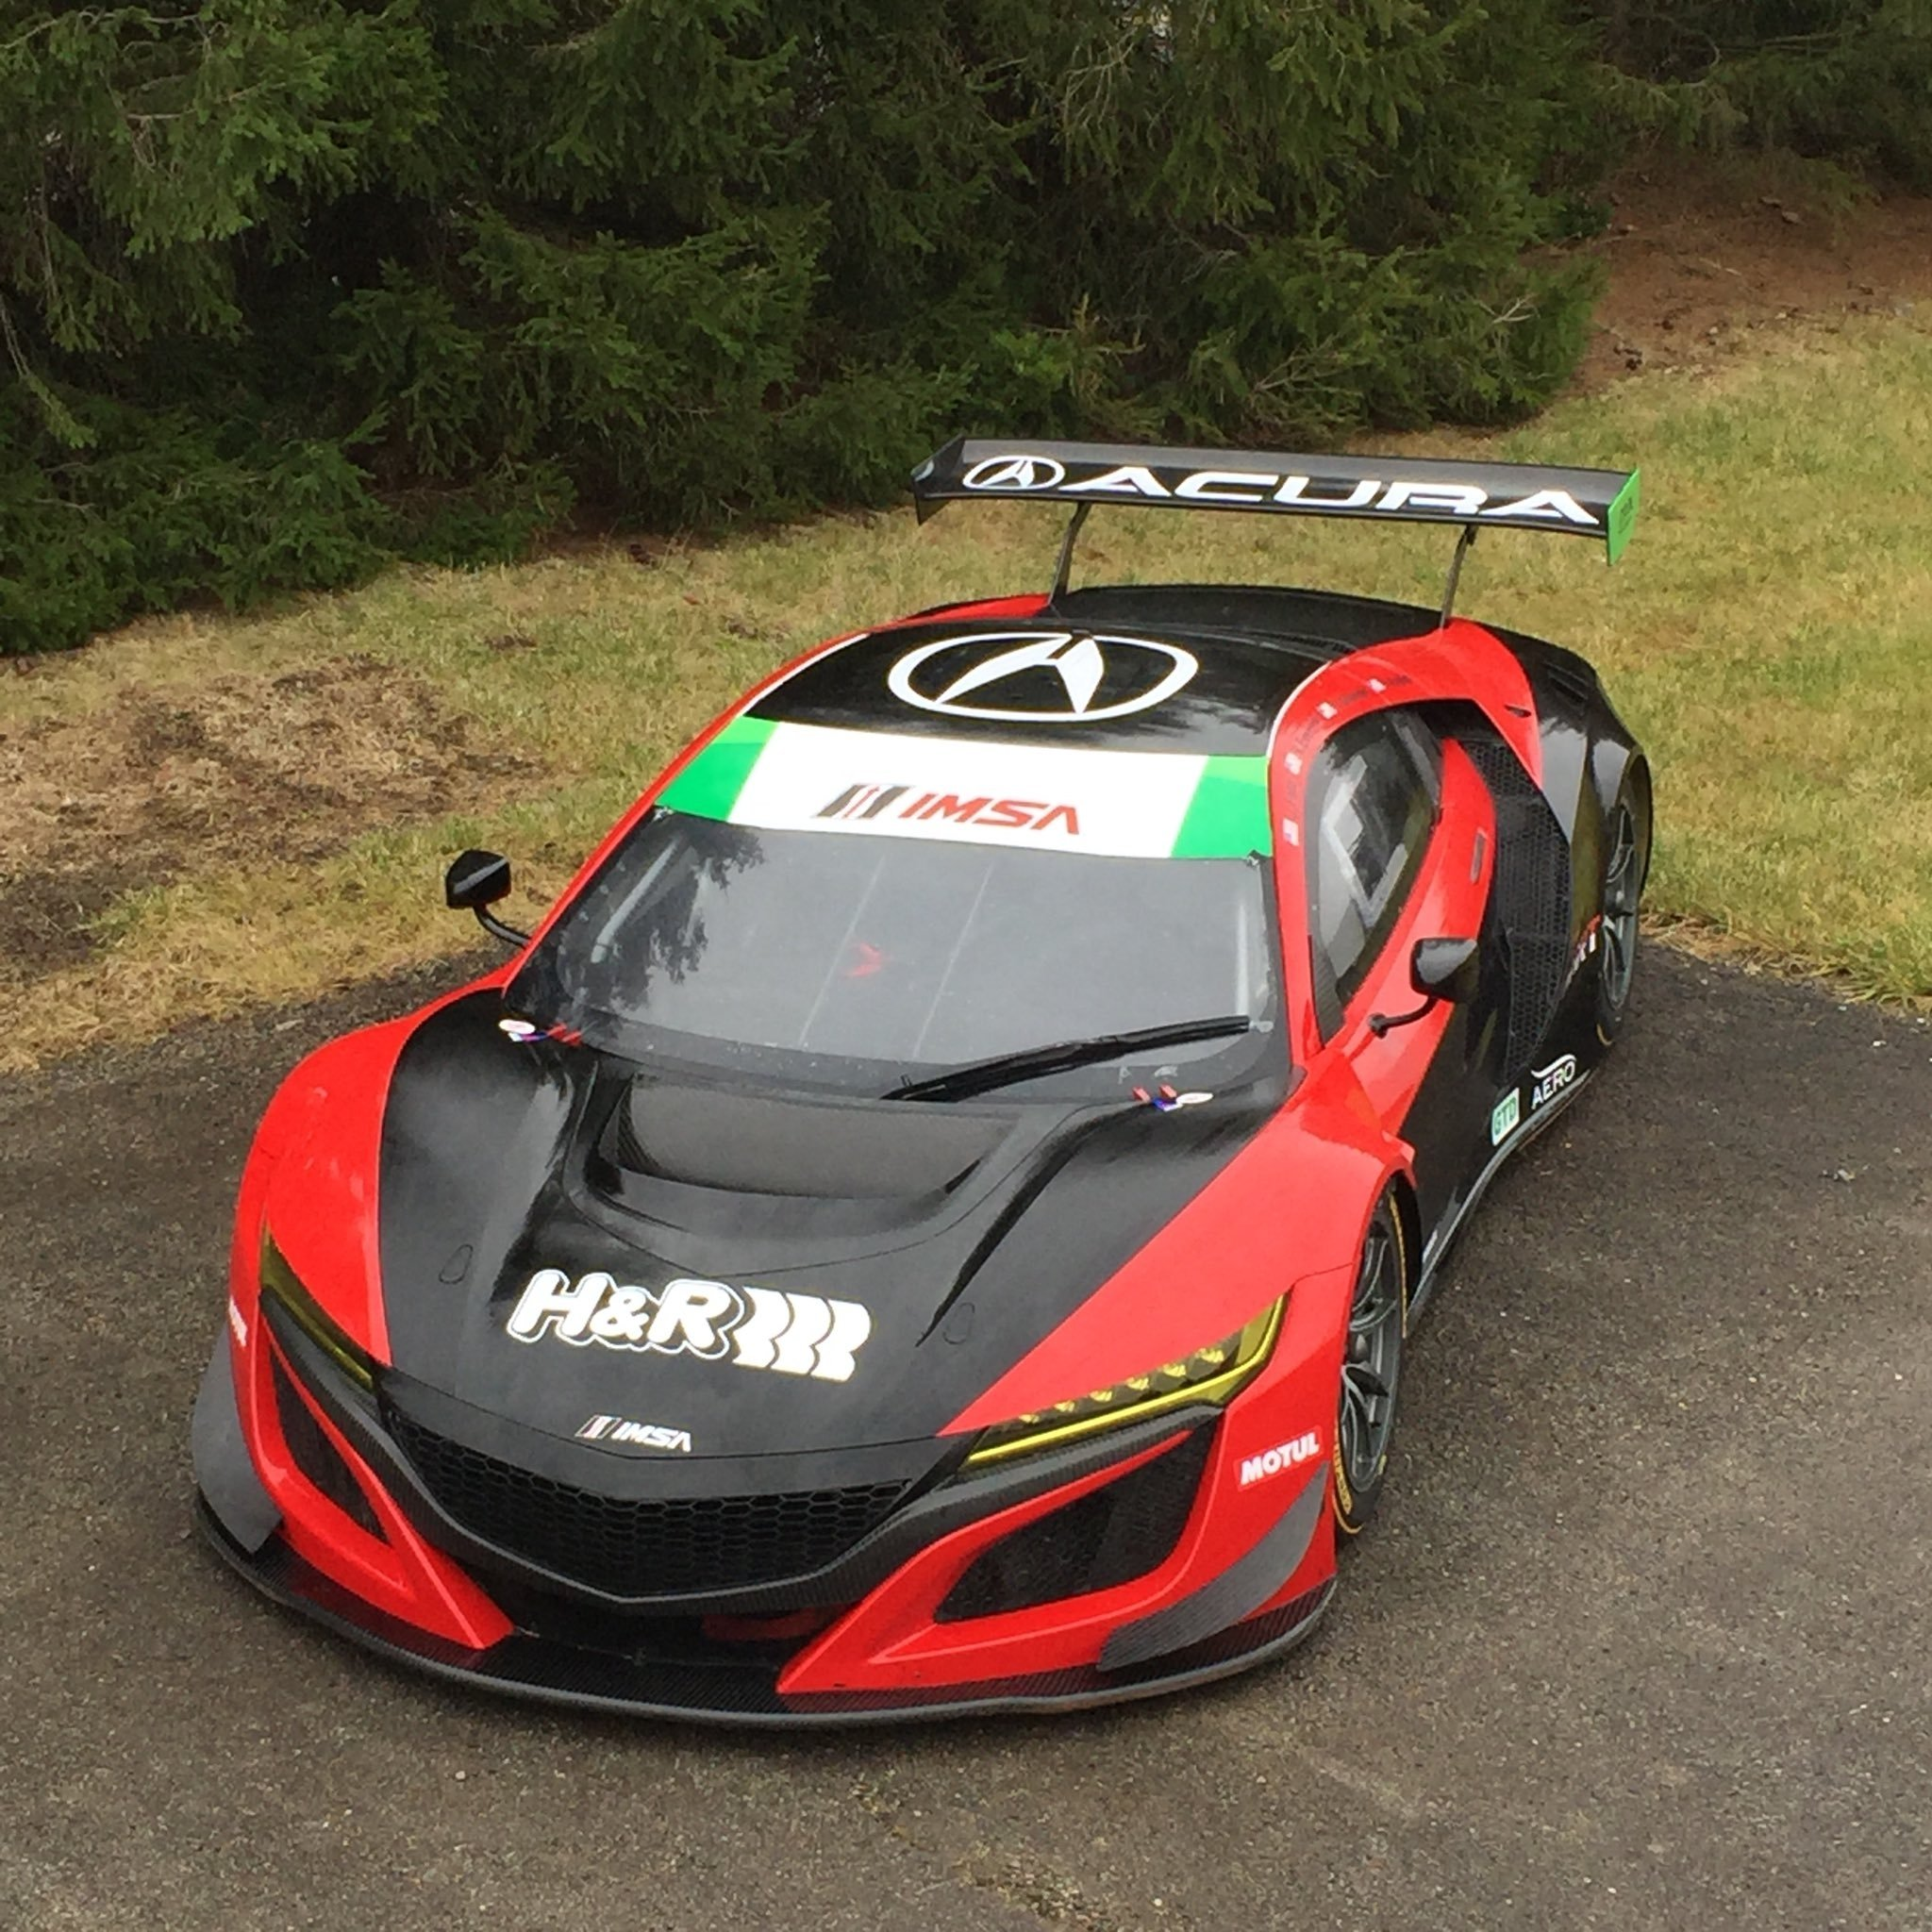 "Lyle Pearson Acura On Twitter: ""The Brand New #Acura #NSX"